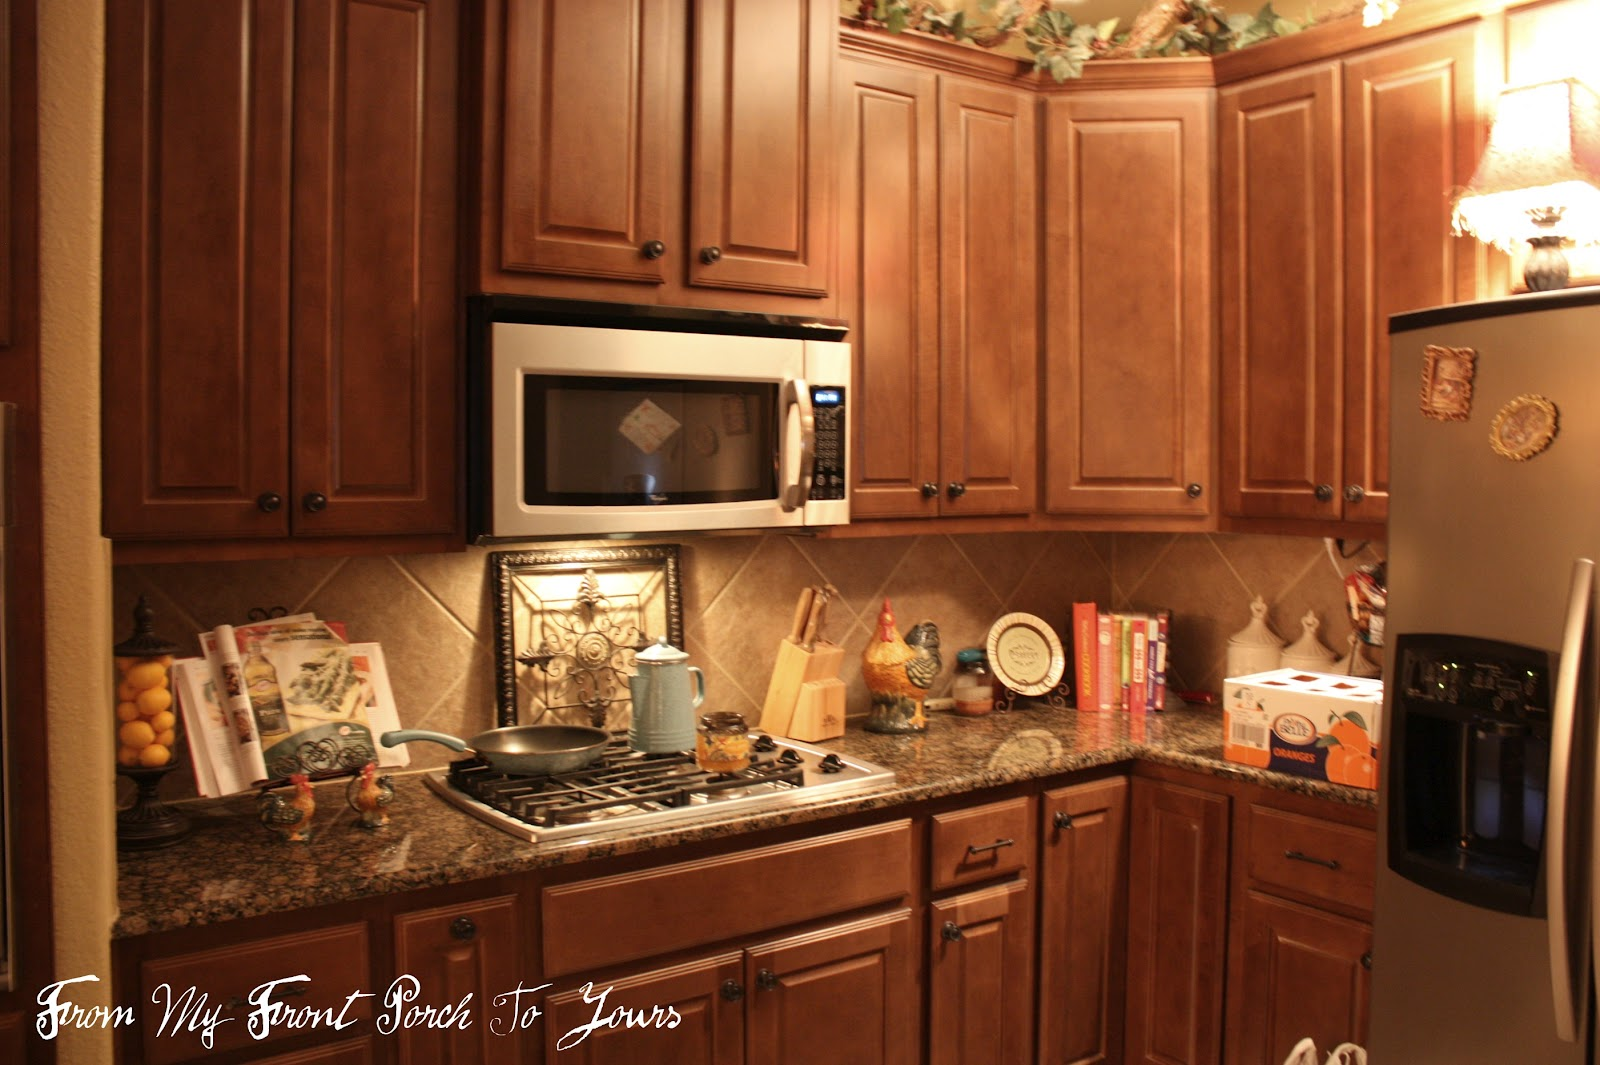 Kitchens with Cabinets On Top of the Lights